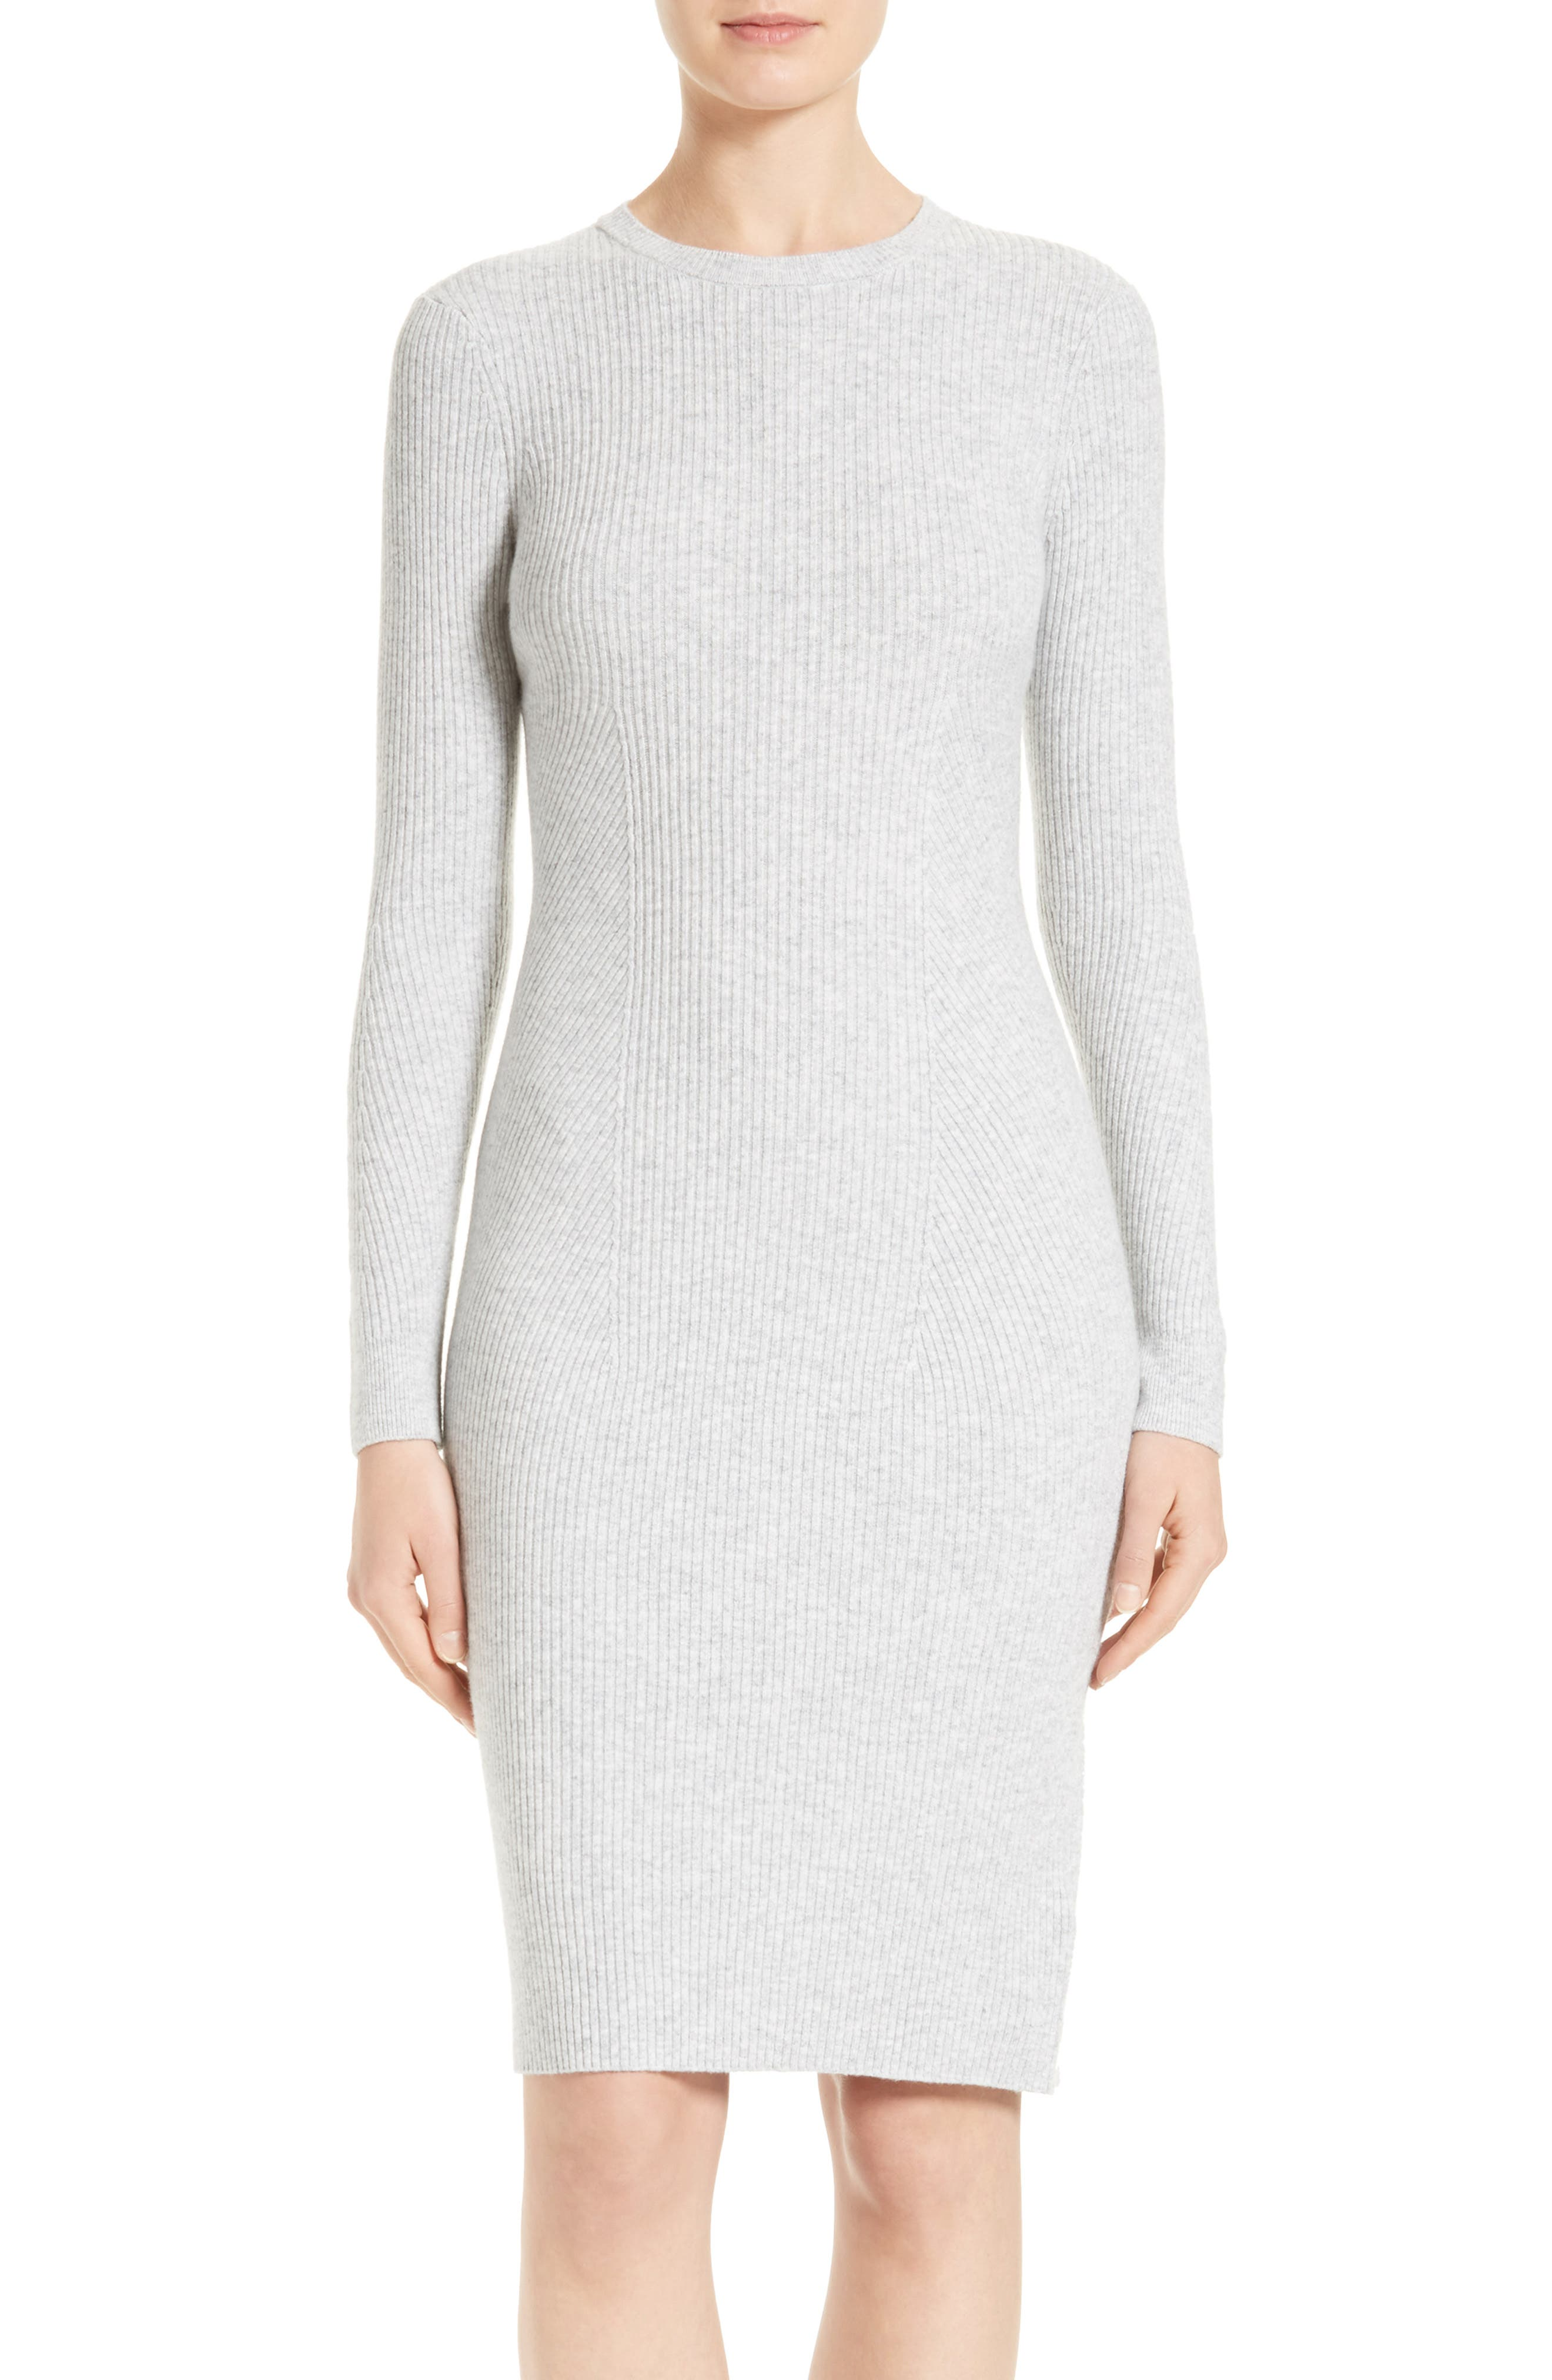 Alternate Image 1 Selected - Ted Baker London Pennih Rib Knit Dress